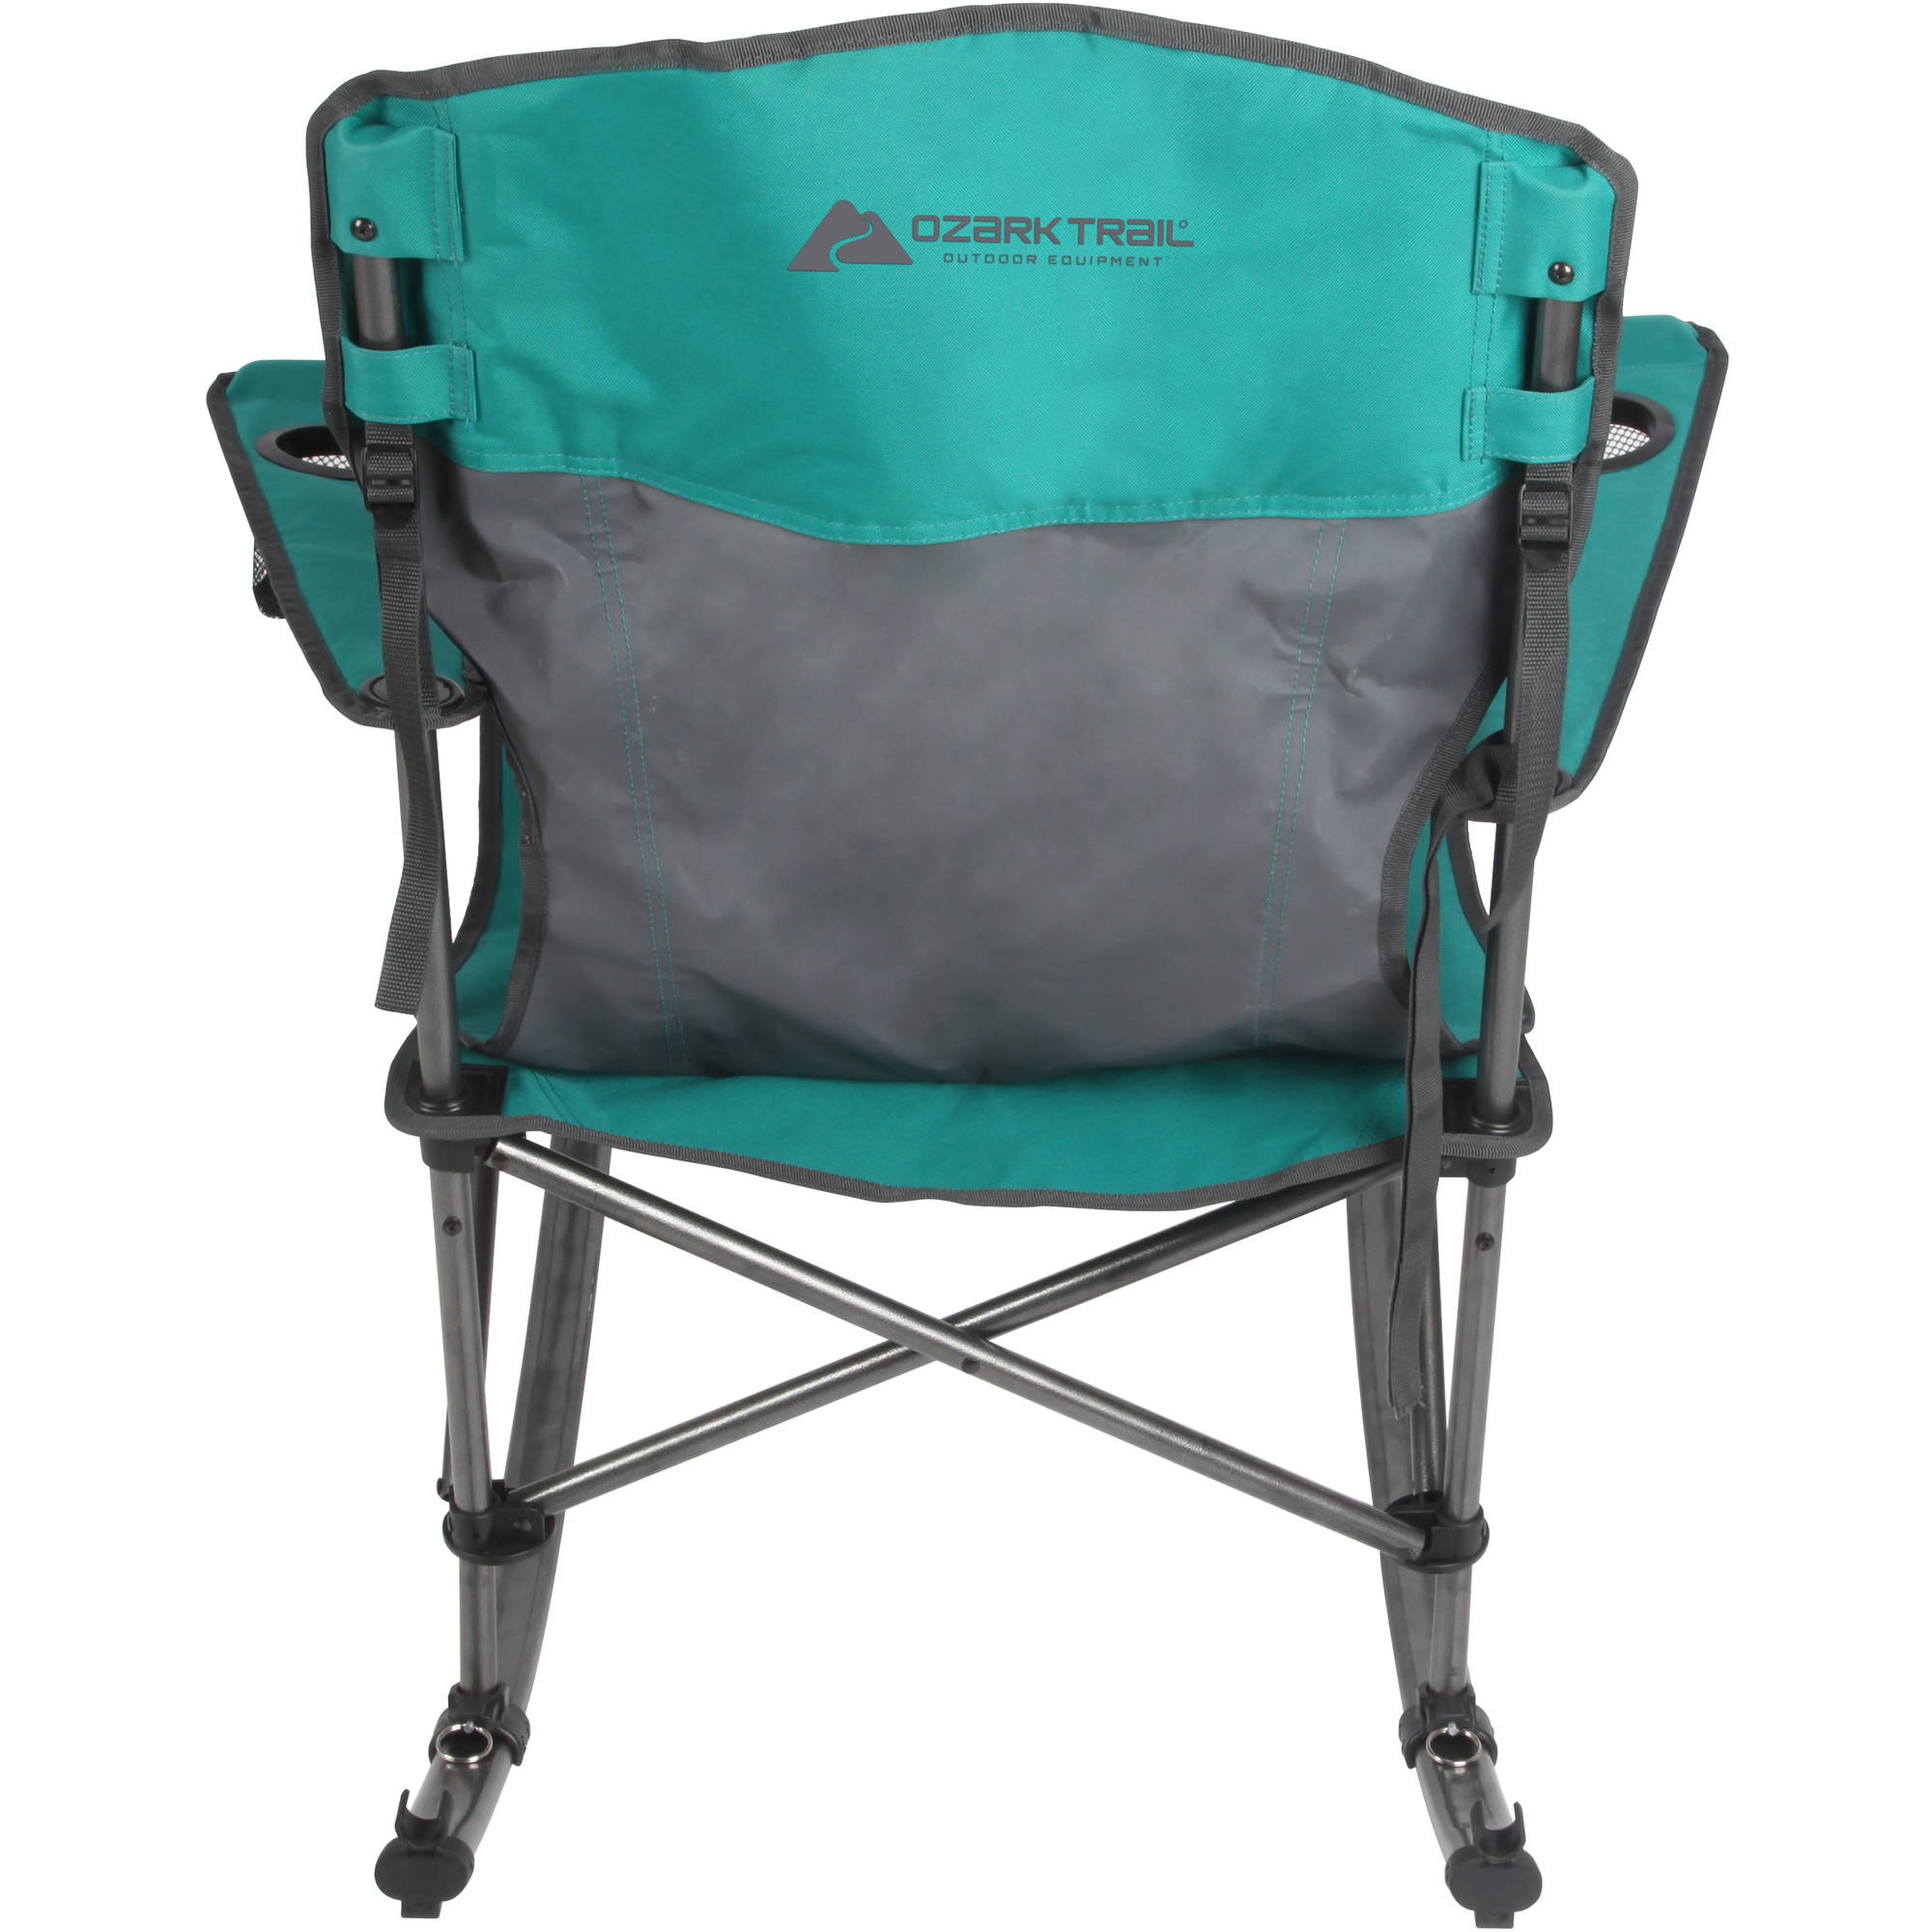 Ozark Trail Quad Fold Rocking Camp Chair With Cup Holders, Green    Walmart.com